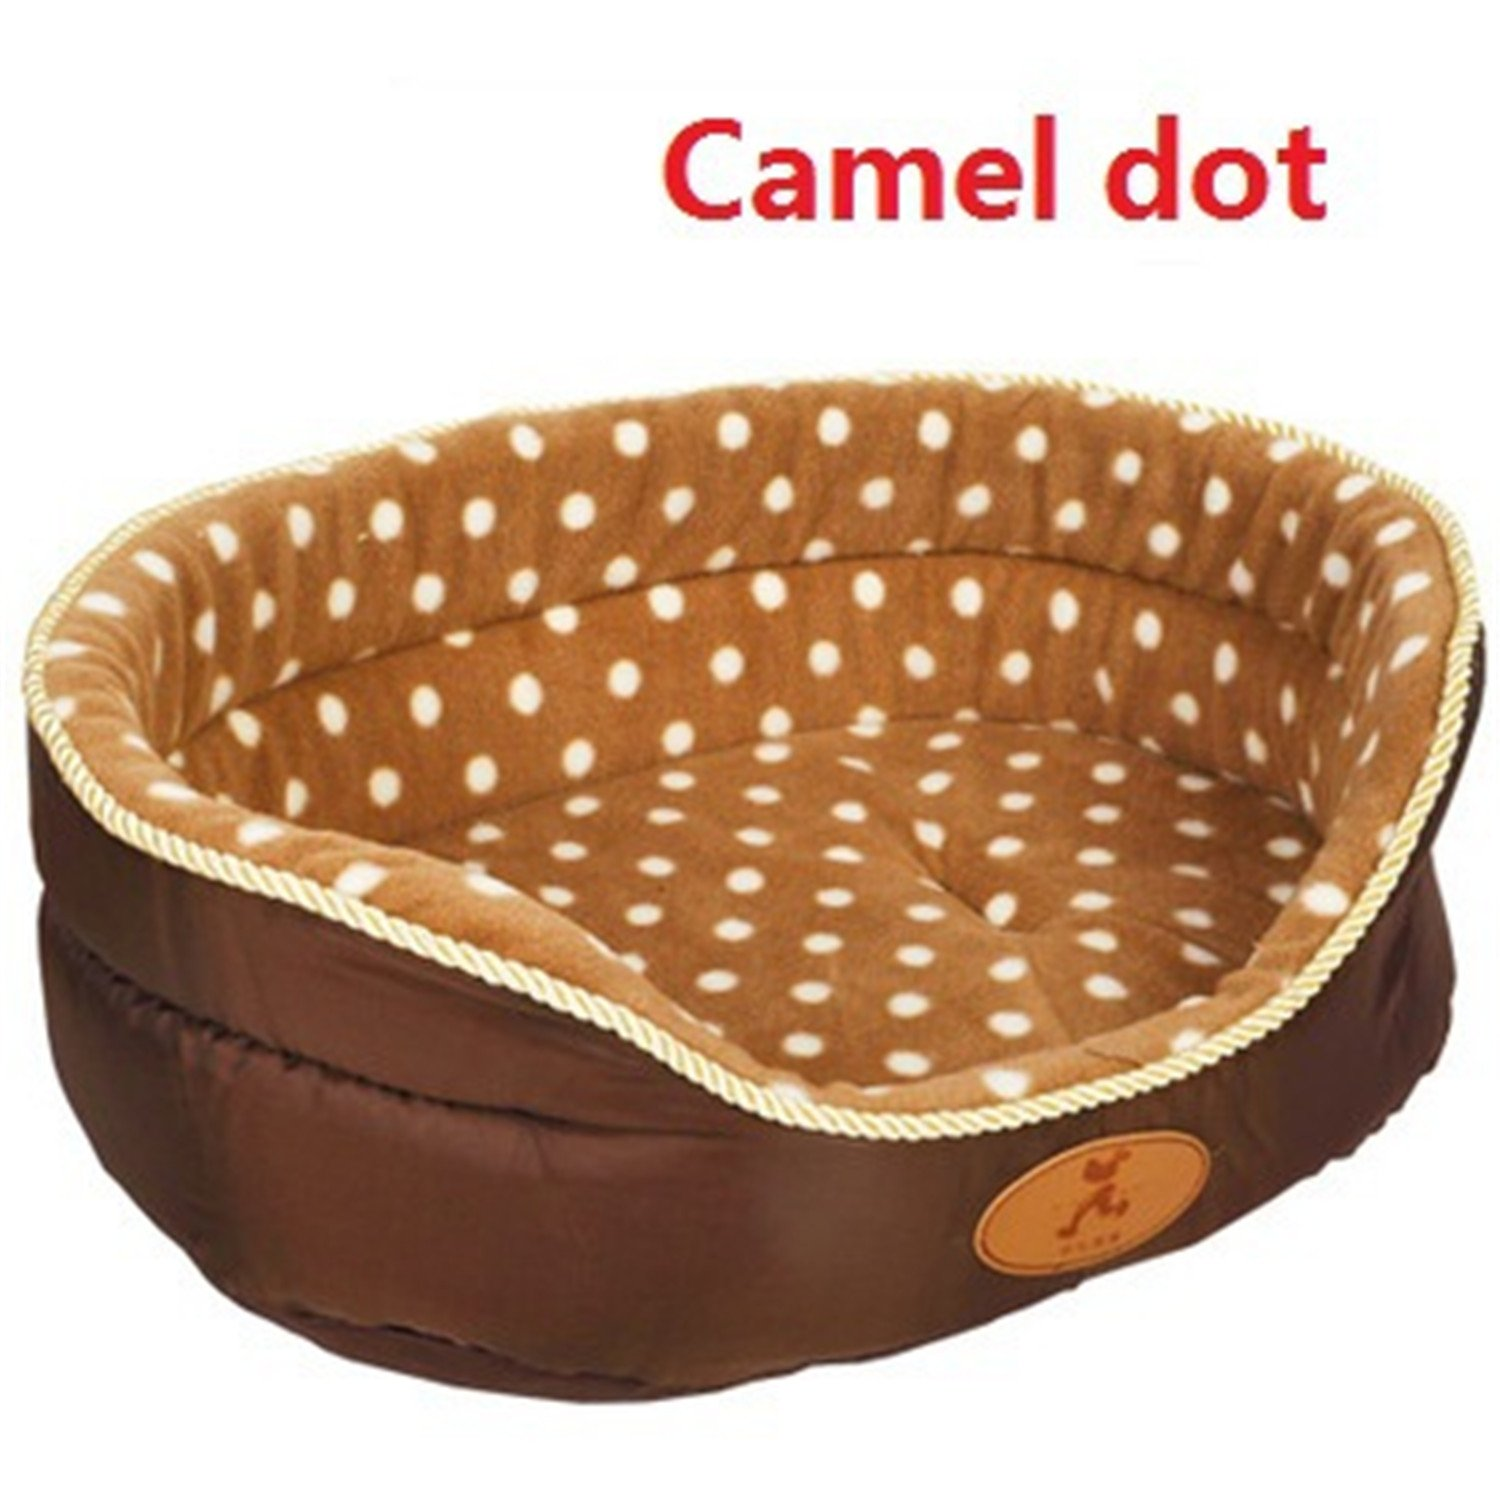 Camel dot M camel dot M Feroni Double Sided Available All Seasons Big Size Extra Large Dog Bed House Sofa Kennel Soft Fleece Pet Dog Cat Warm Bed s-XL Camel dot M